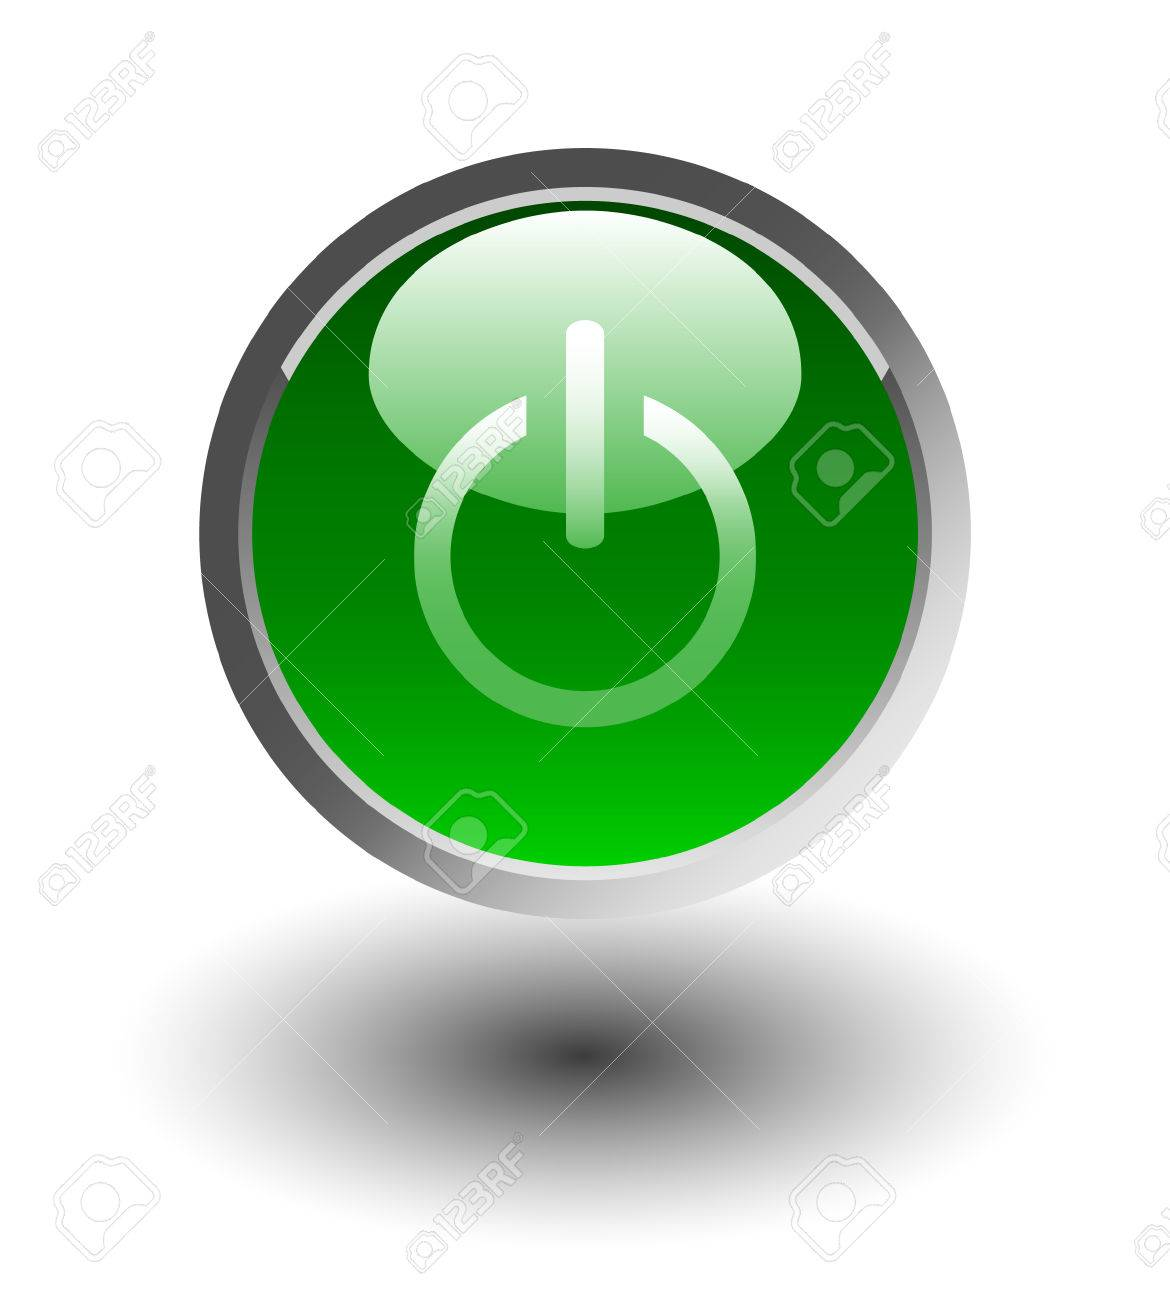 Green glowing power on or off button Stock Vector - 4622812